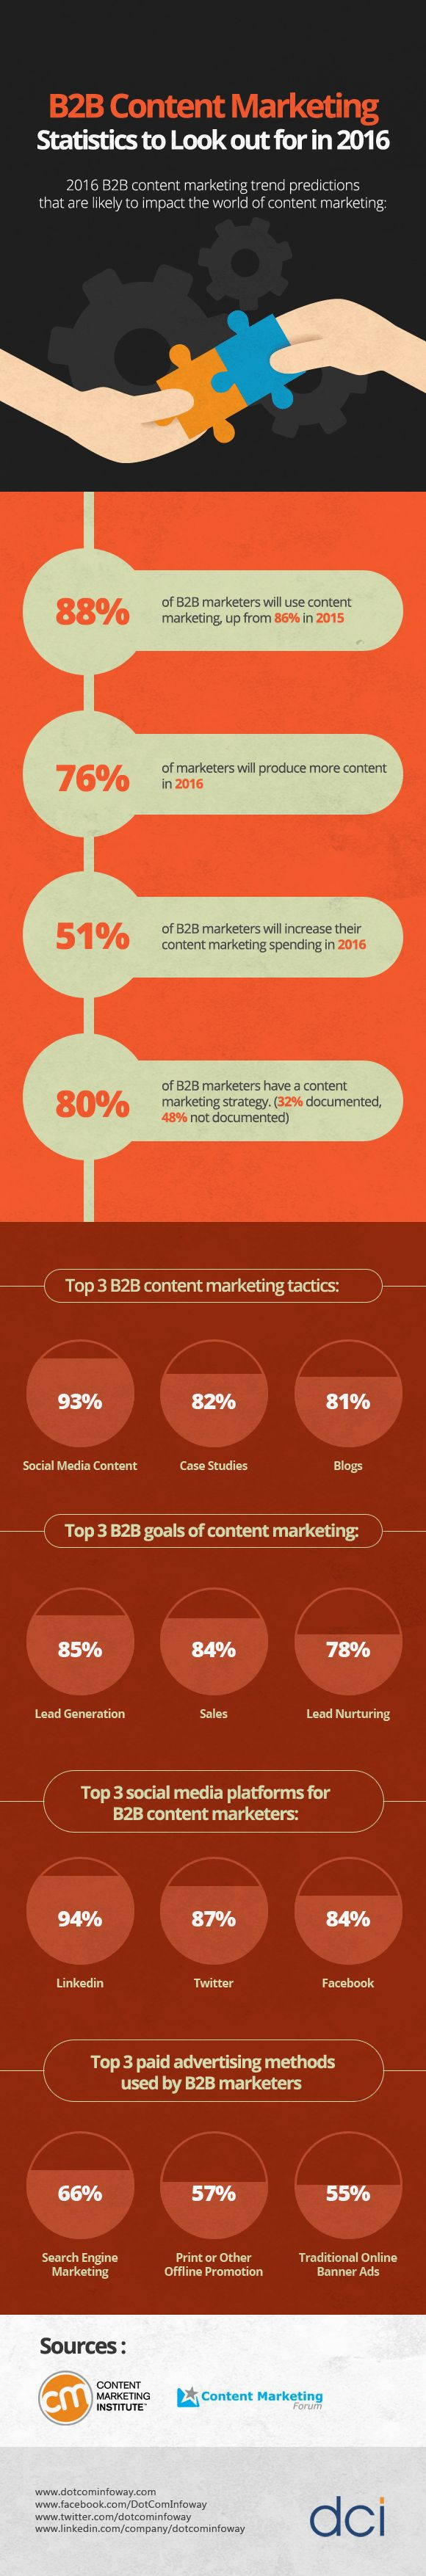 B2B Content Marketing Strategies to Look out for in 2016